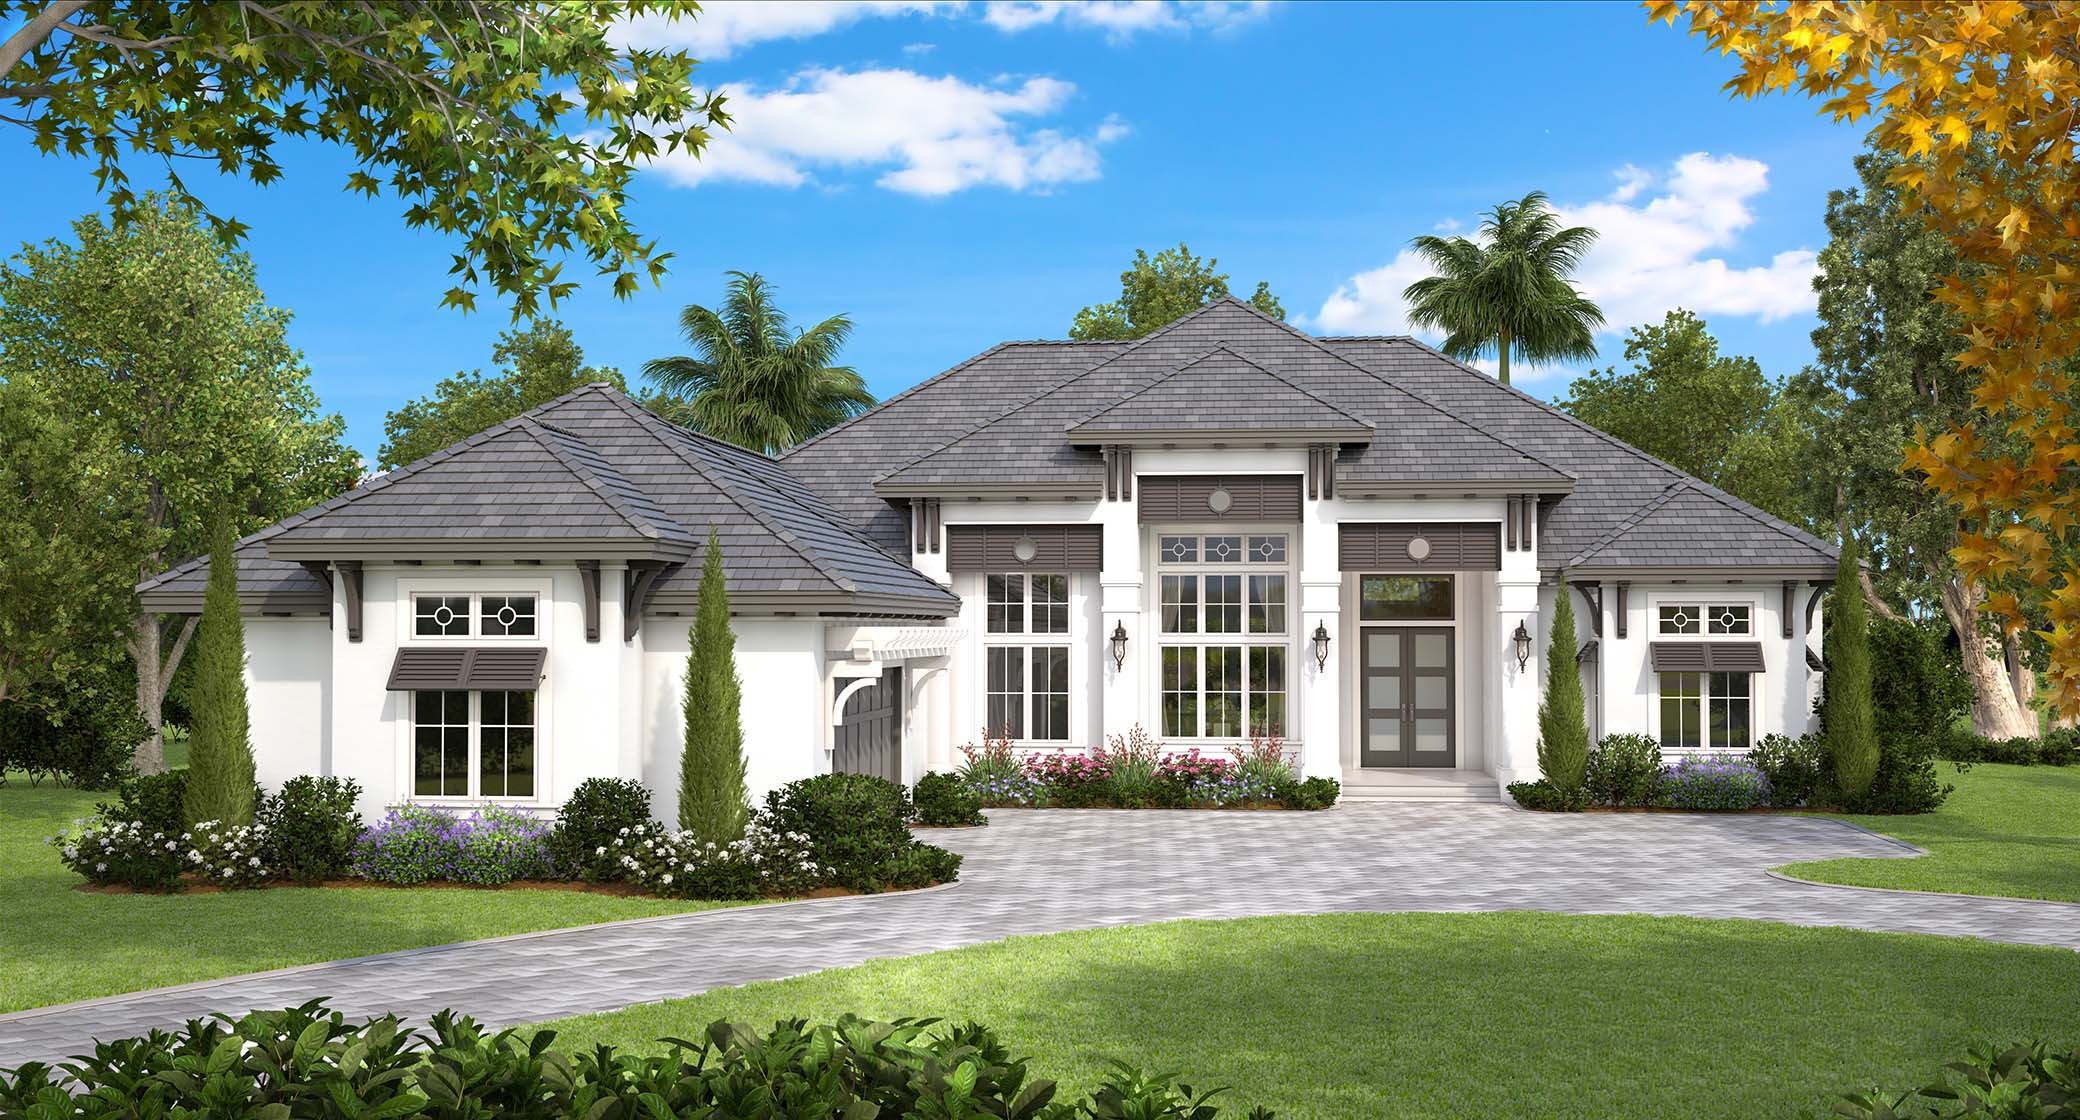 Coastal european house plan 175 1130 4 bedrm 4089 sq ft for Transitional house plans